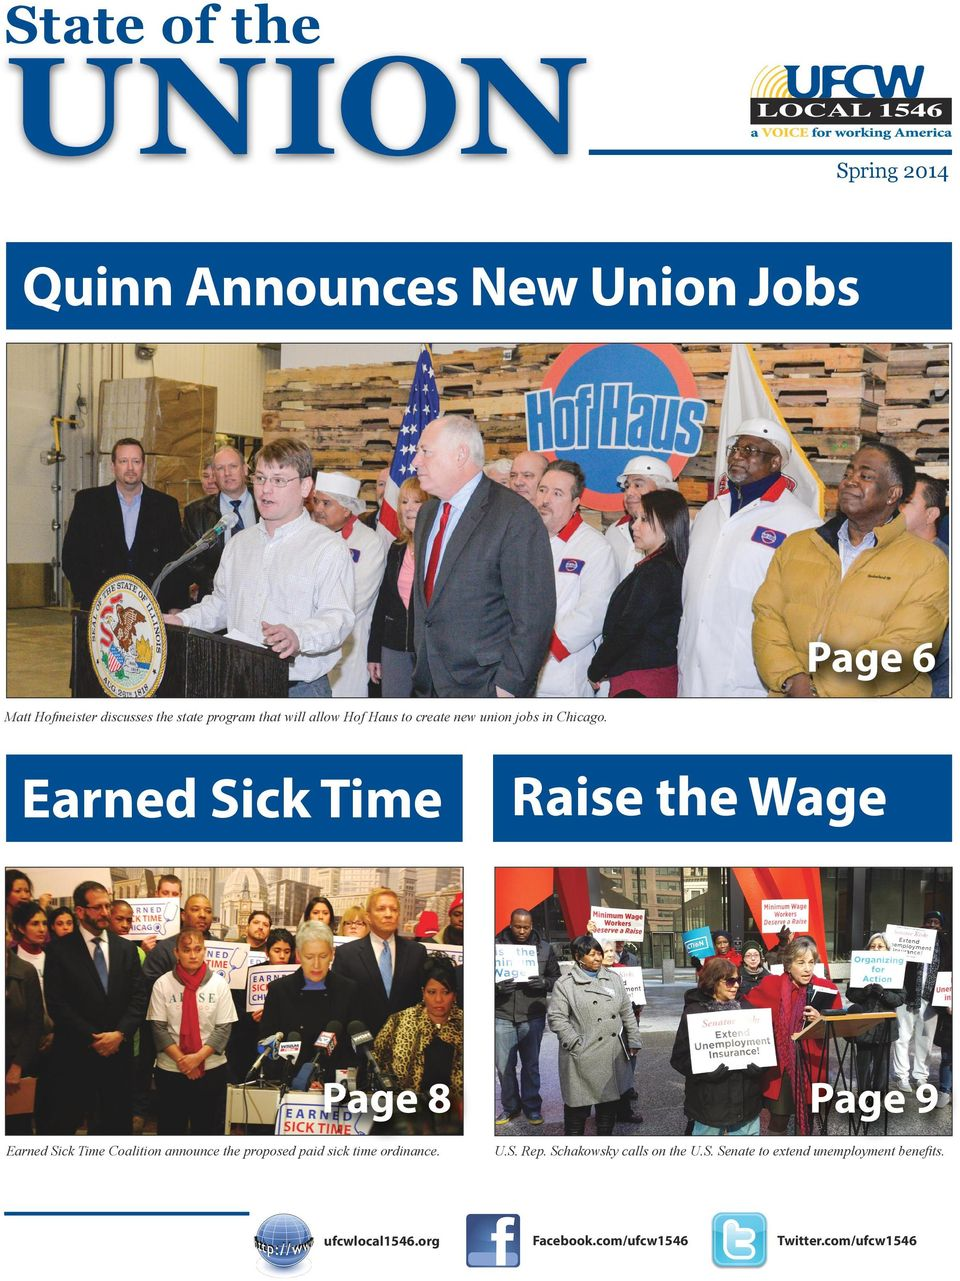 Earned Sick Time Raise the Wage Page 8 Earned Sick Time Coalition announce the proposed paid sick time